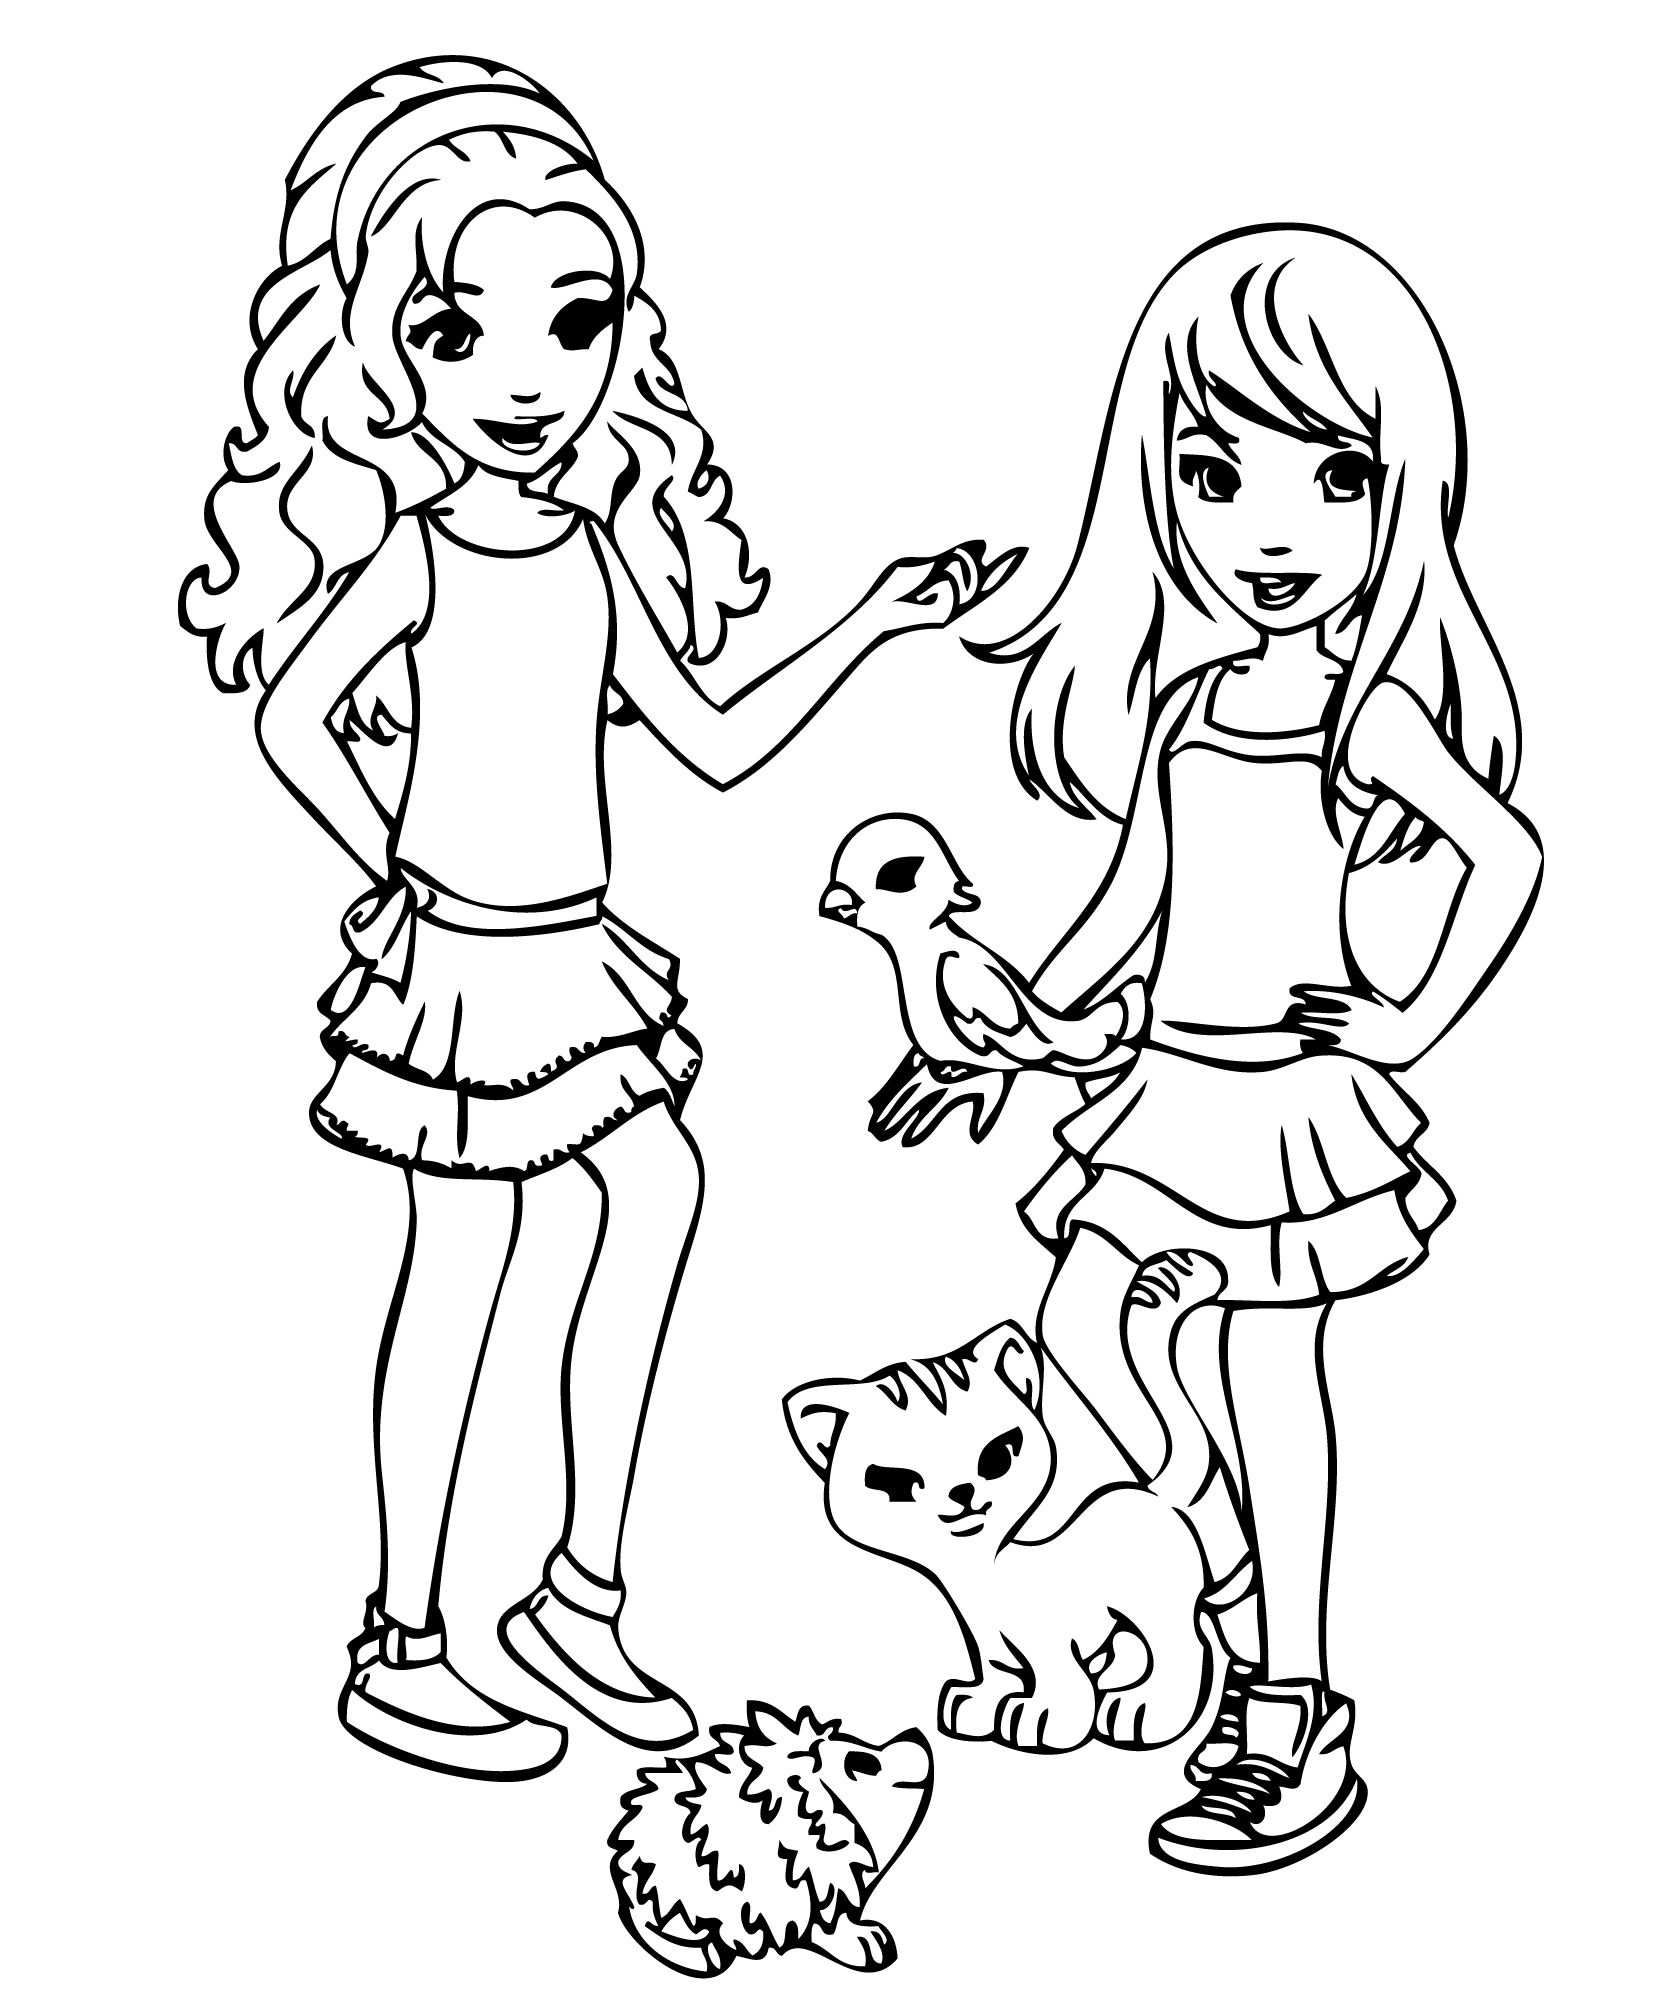 Lego Coloring Pages Image Search Ask Com Lego Coloring Pages